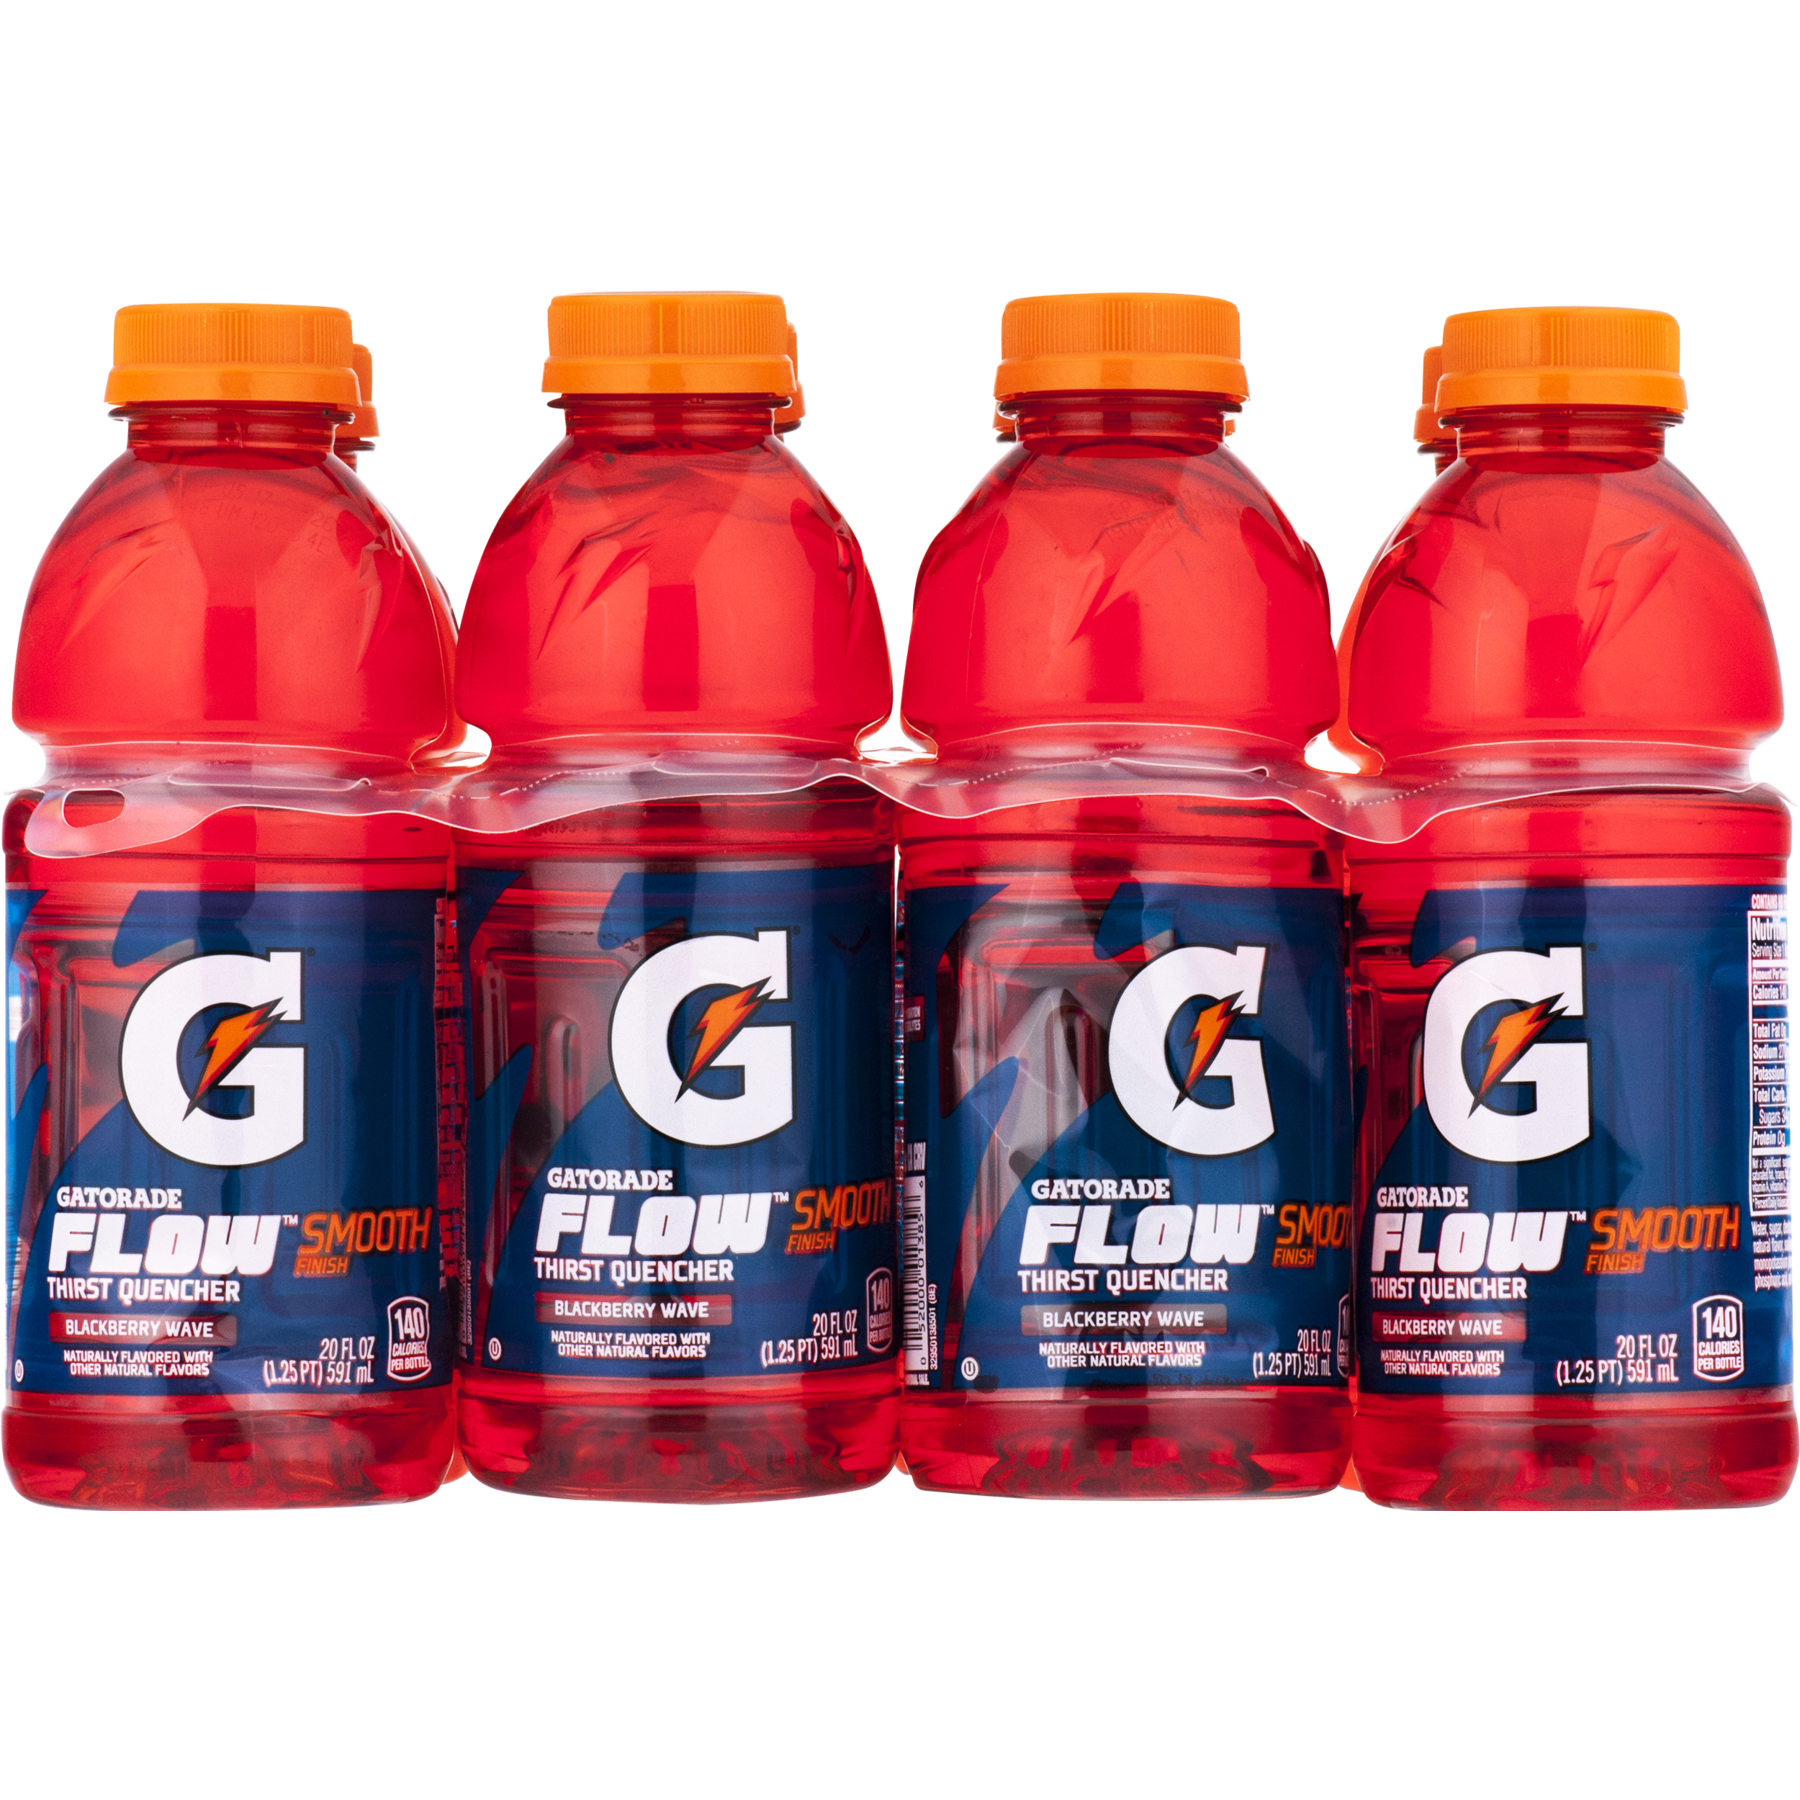 gatorade transparent retro